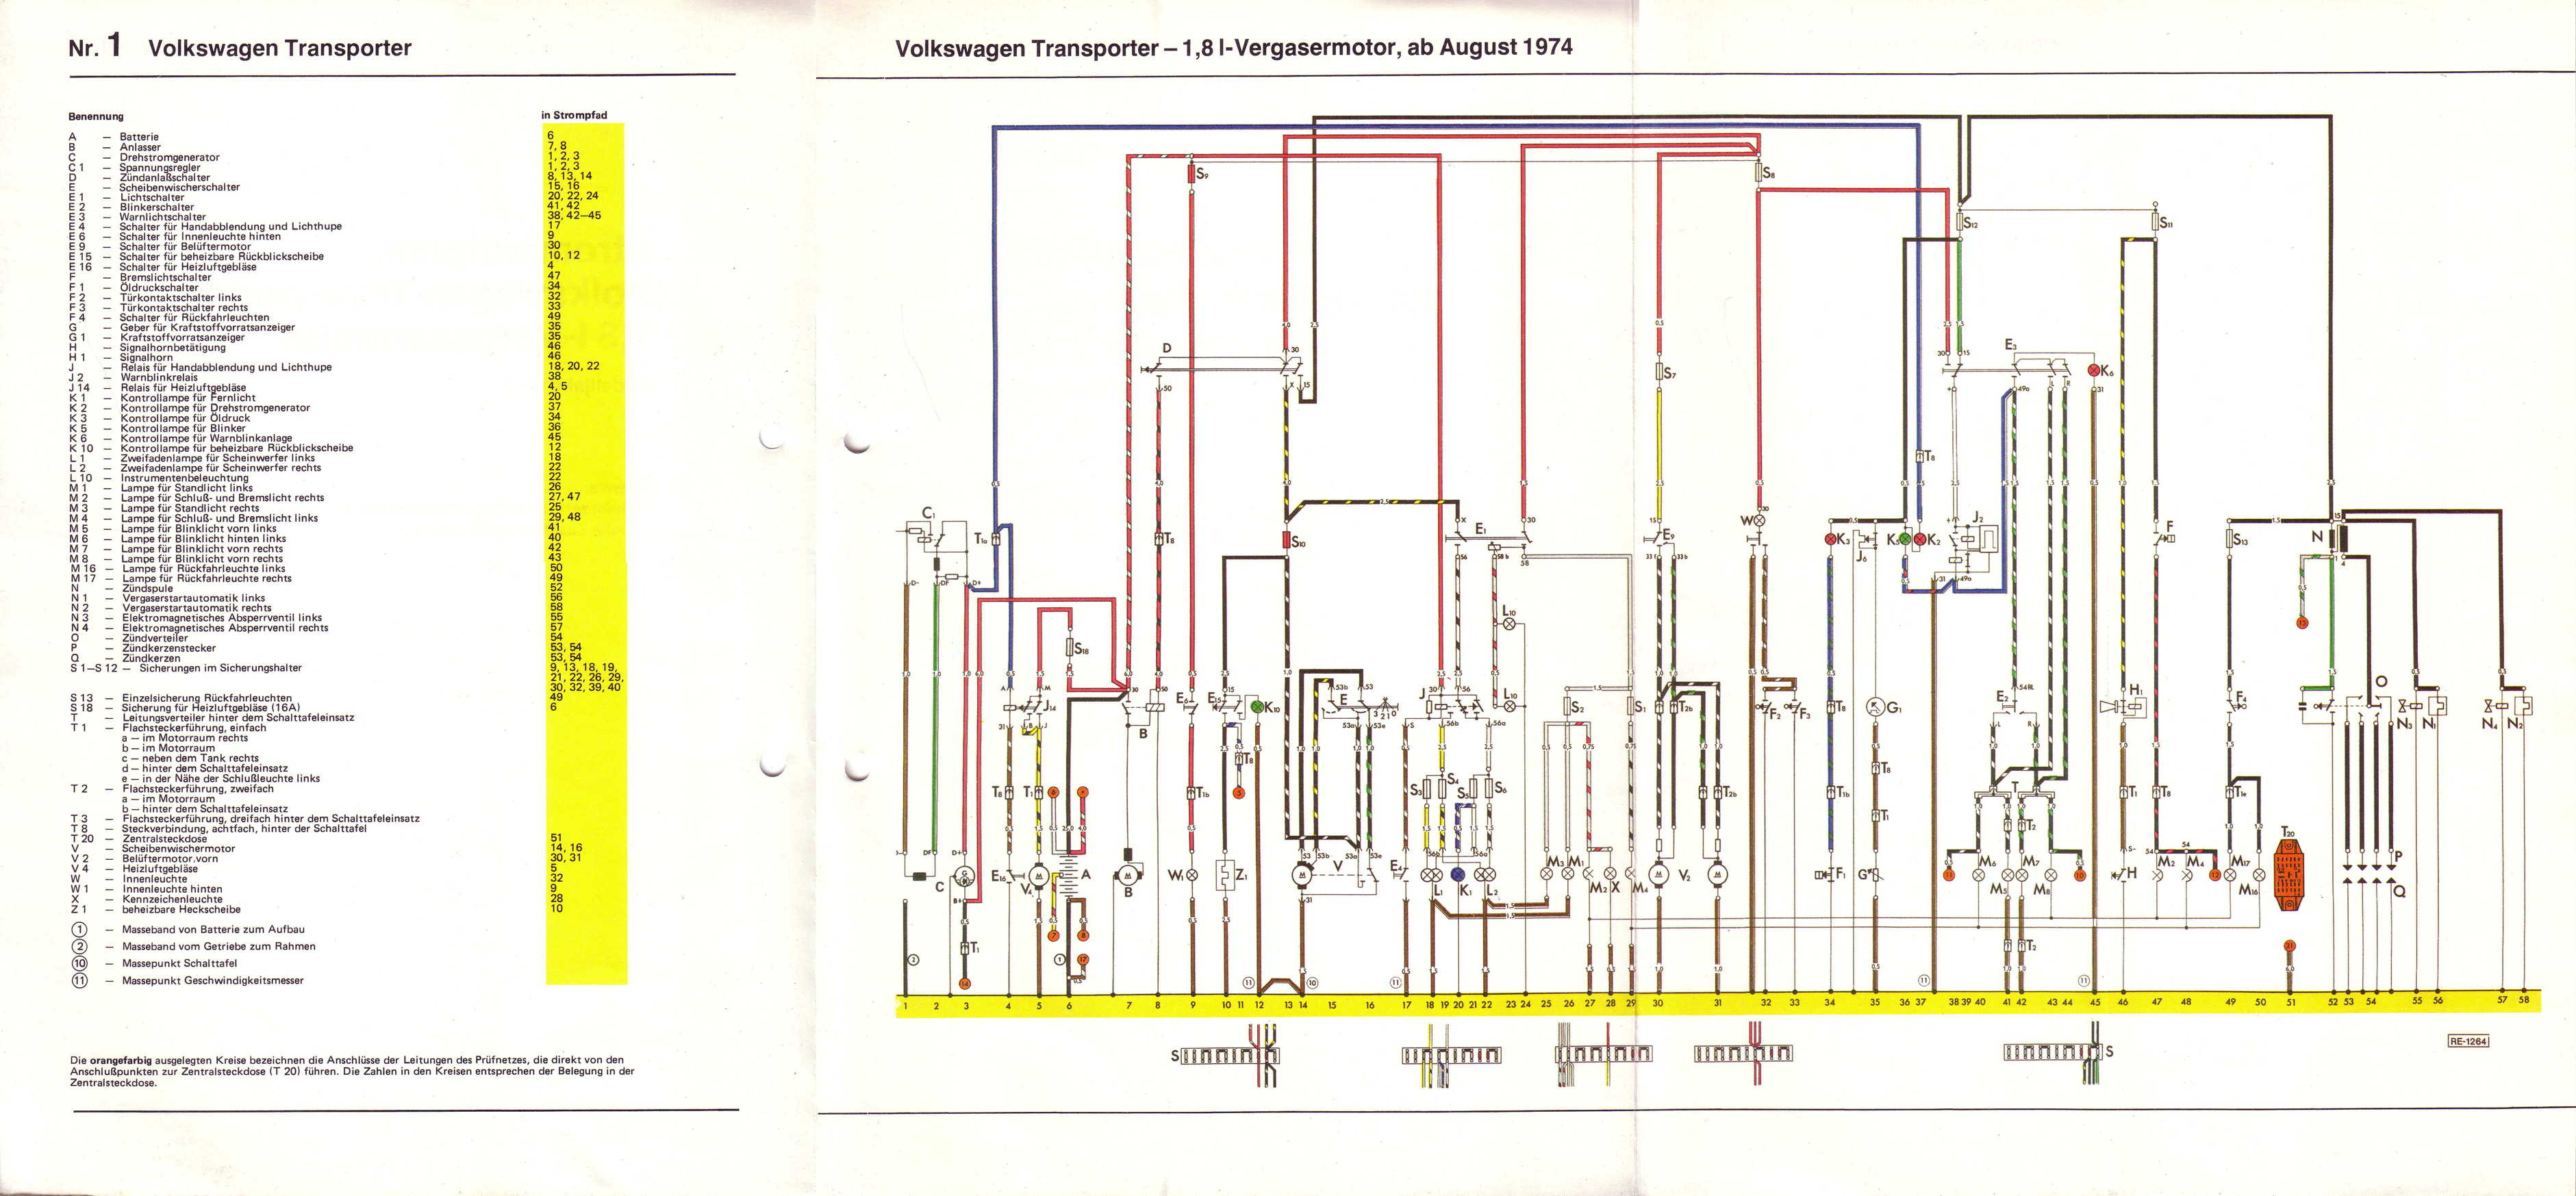 vw thing schematic simple wiring diagram vw thing schematic wiring diagram libraries vw thing engine schematic 1973 vw thing wiring diagram wiring